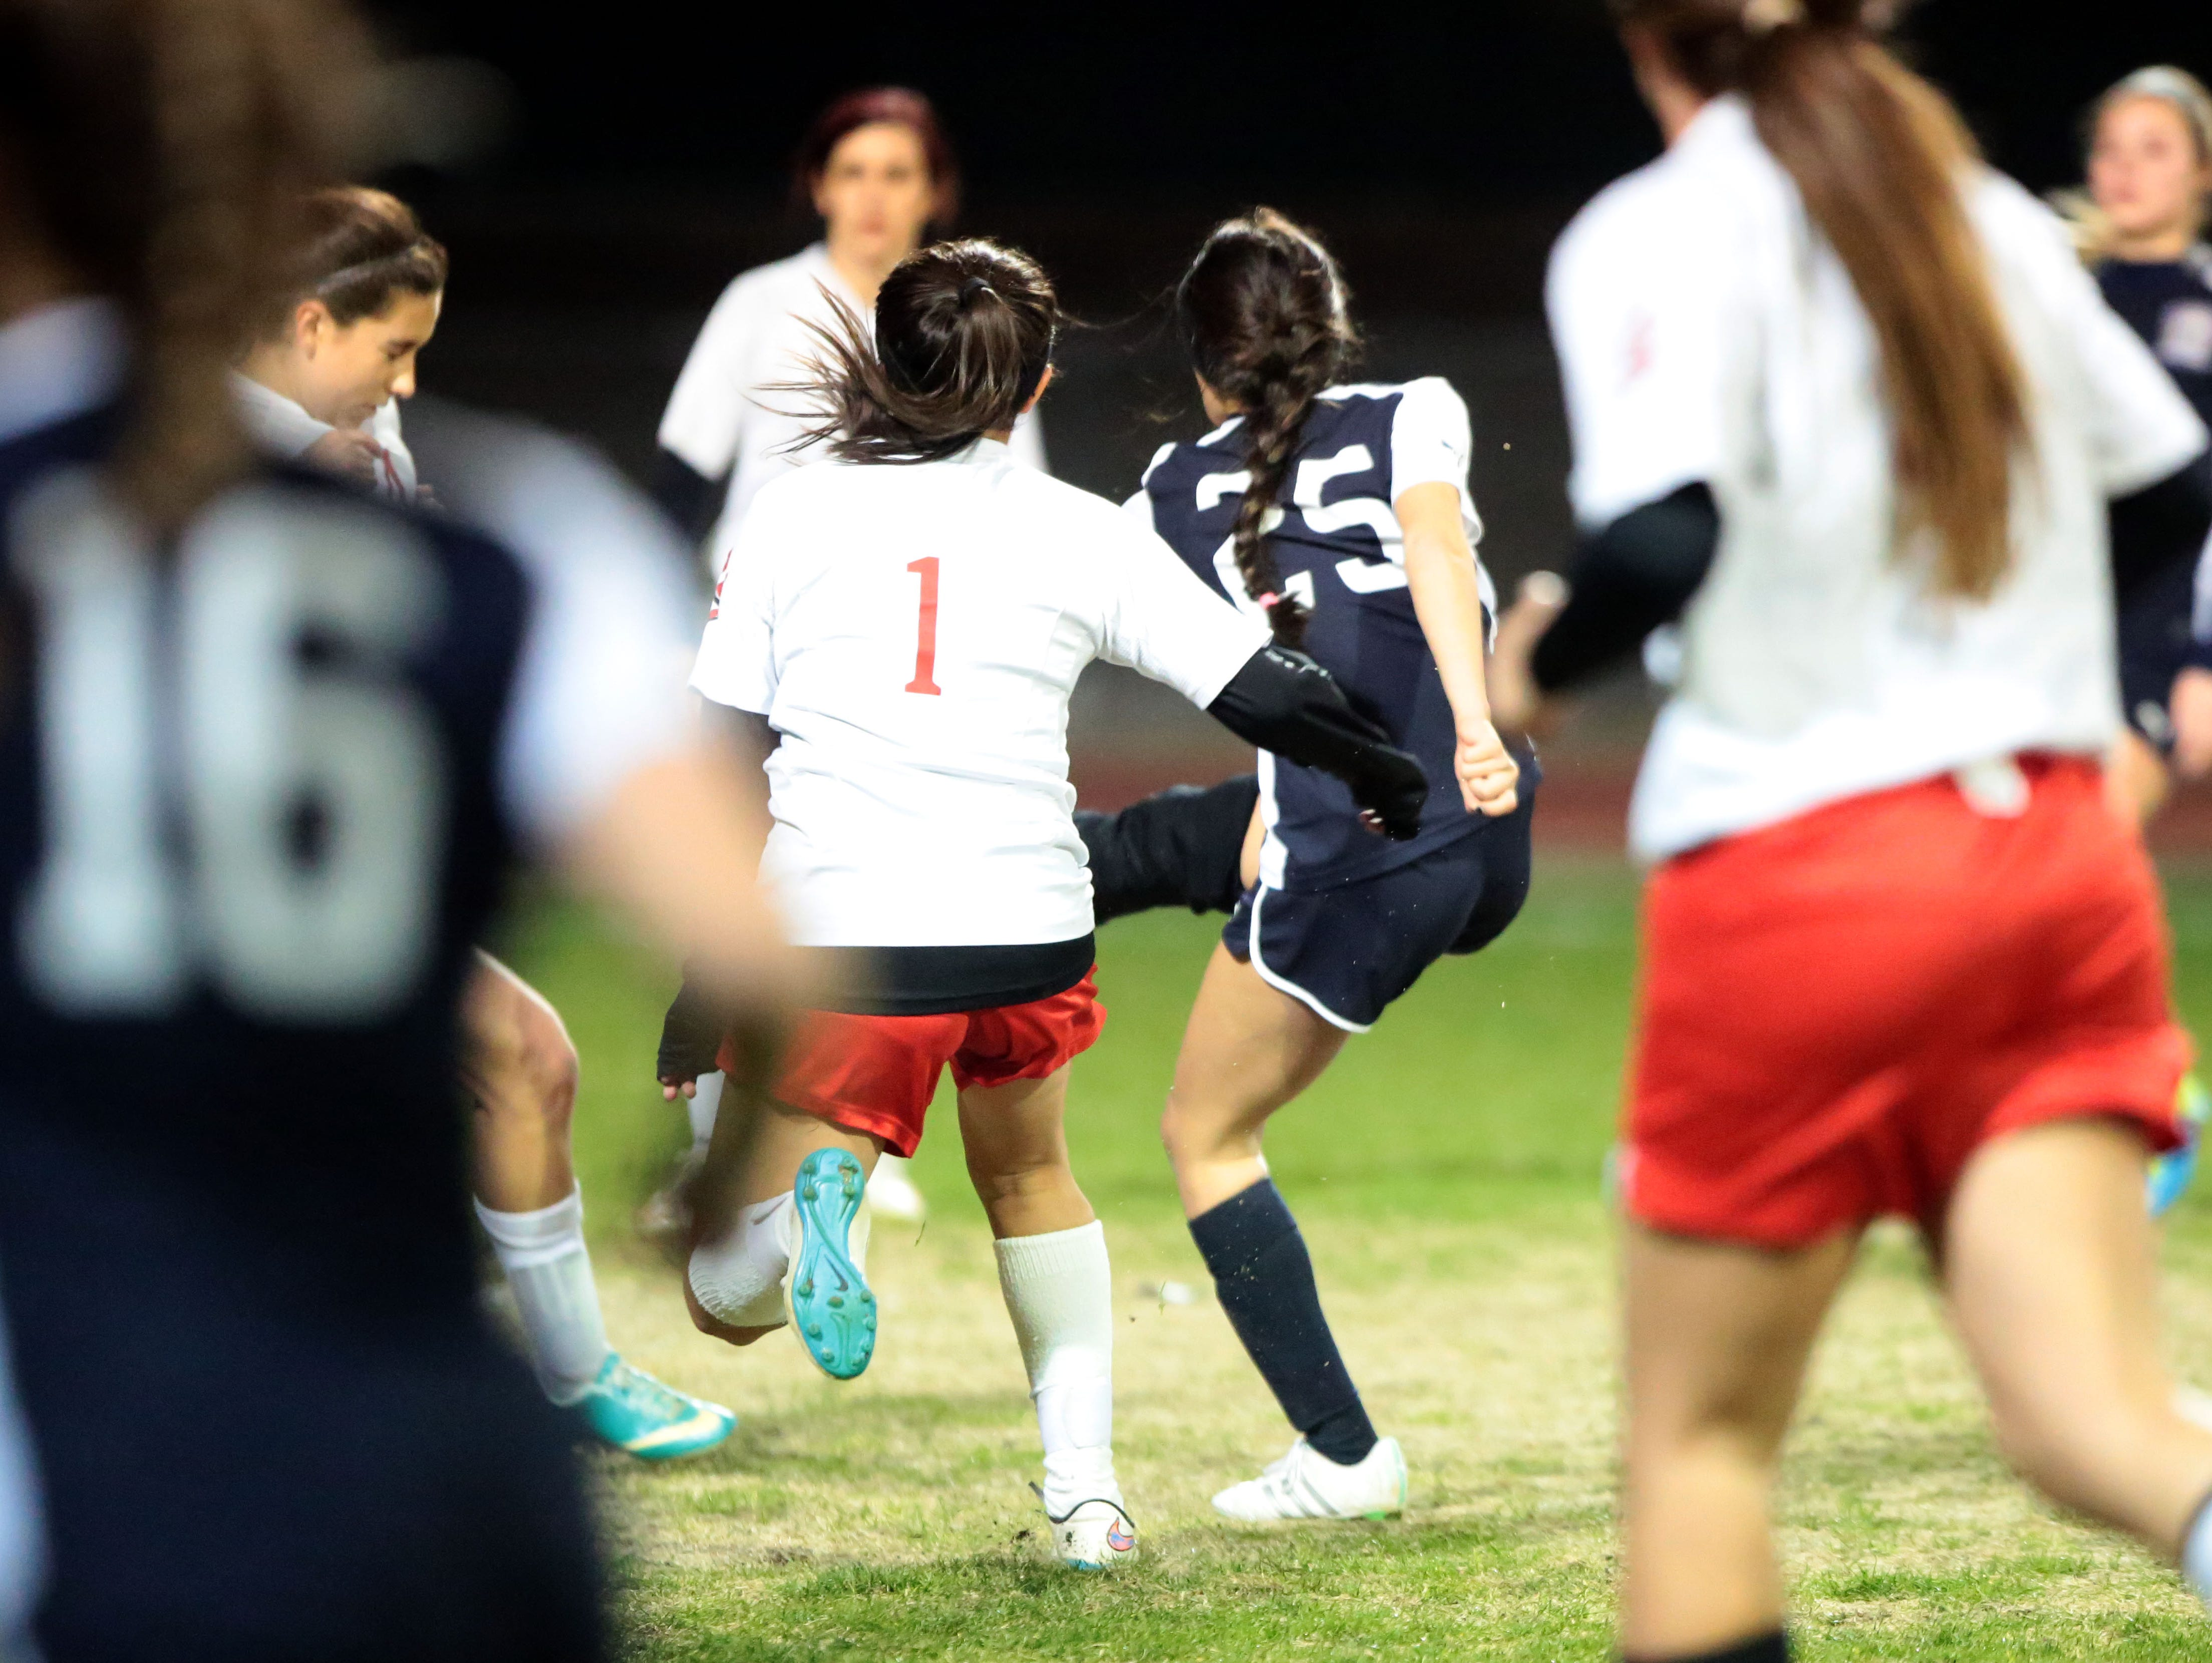 La Quinta's Tatiana Woodworth scores against Palm Springs in the first half on Tuesday, January 12, 2016 in Palm Springs